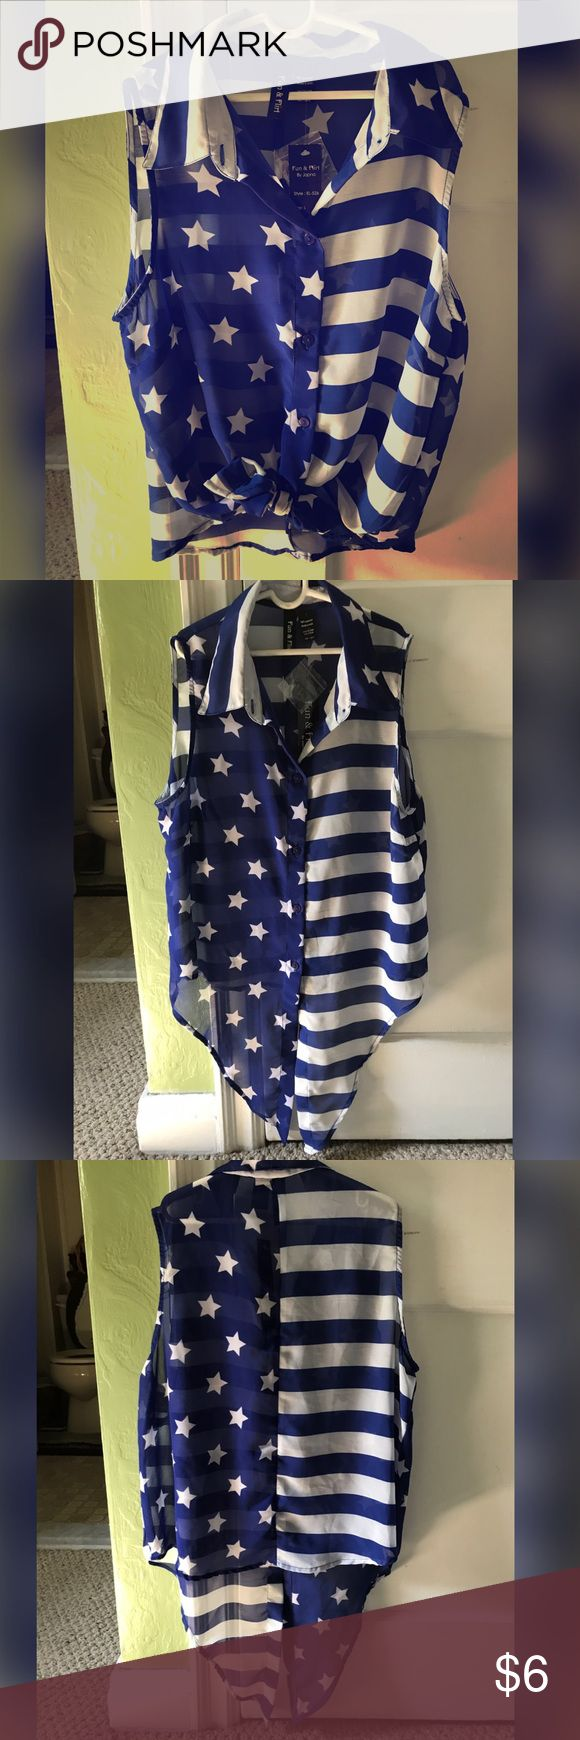 ❣️🌺🇺🇸 American flag theme tie shirt 🇺🇸🌺❣️ Stars and Stripes pattern shirt. White and blue. Crop top tie front. I showed pictures of it tied and not tied.. super cute shirt. Transparent. Shows a little of the strings coming out of shirt like in the last photo.. shirt is brand new never worn! Fun & Flirty Tops Crop Tops